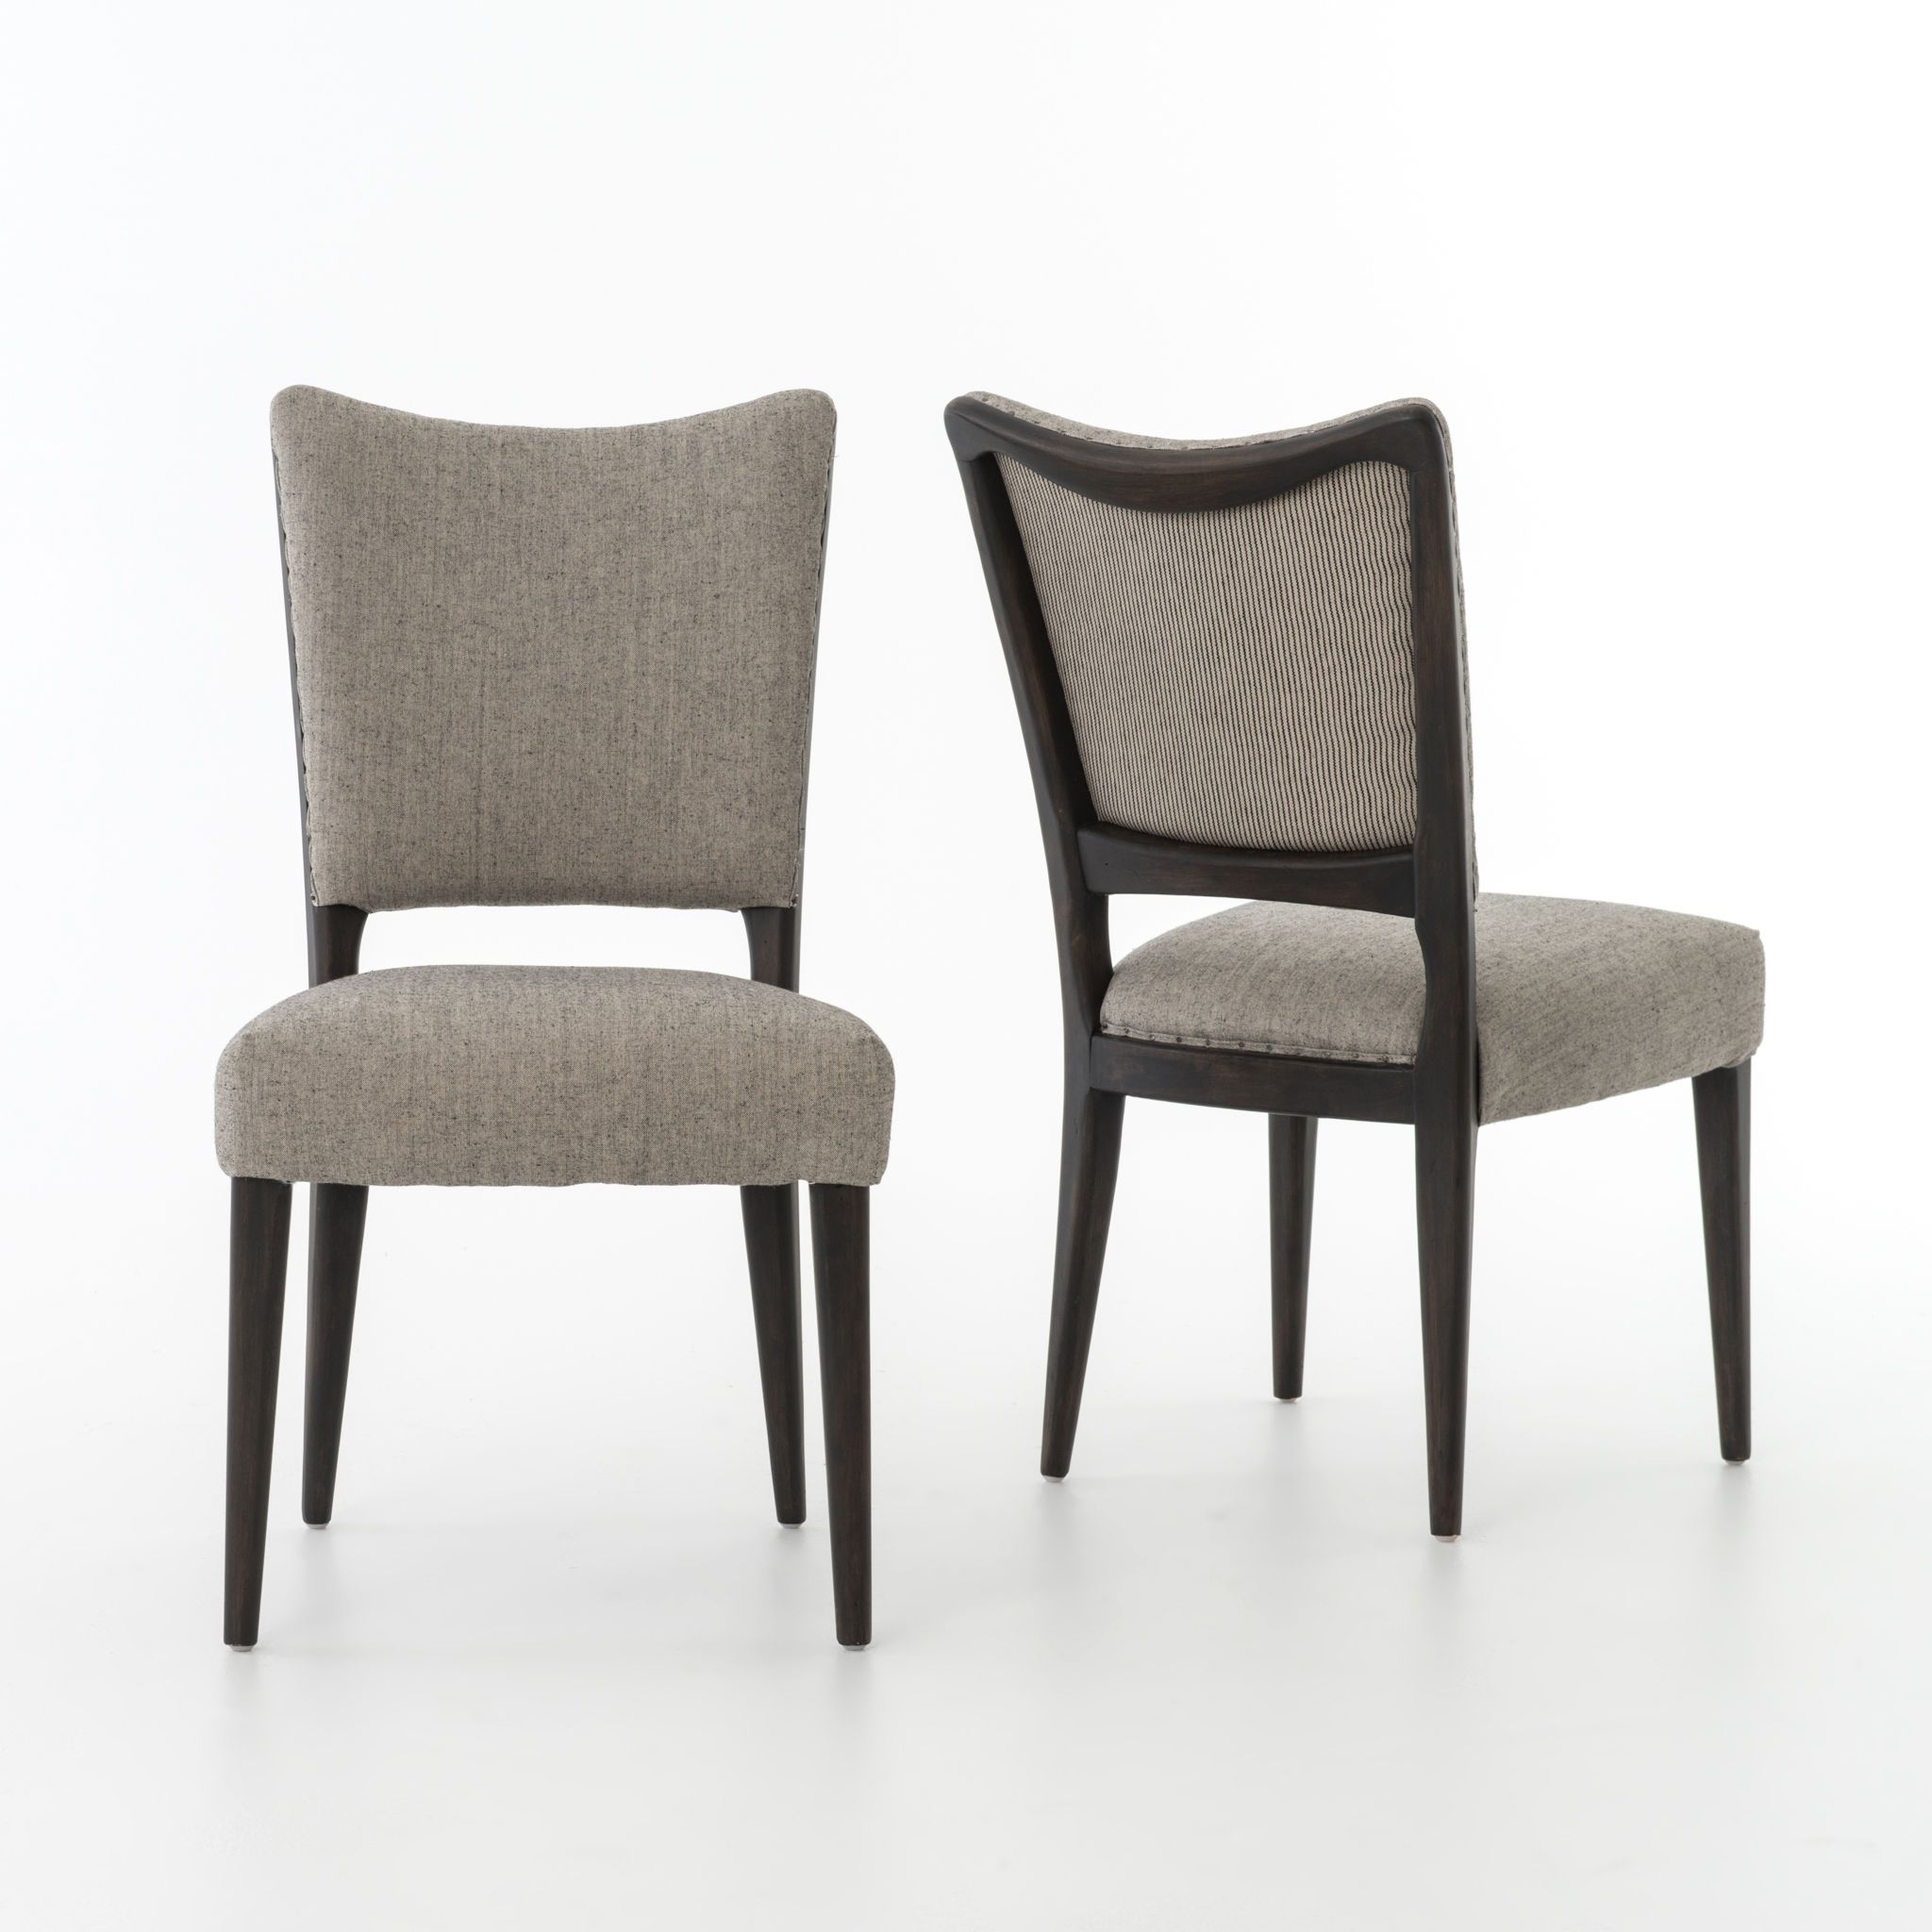 Kitchen Lennox Dining Chair-Ives White CABT-18A